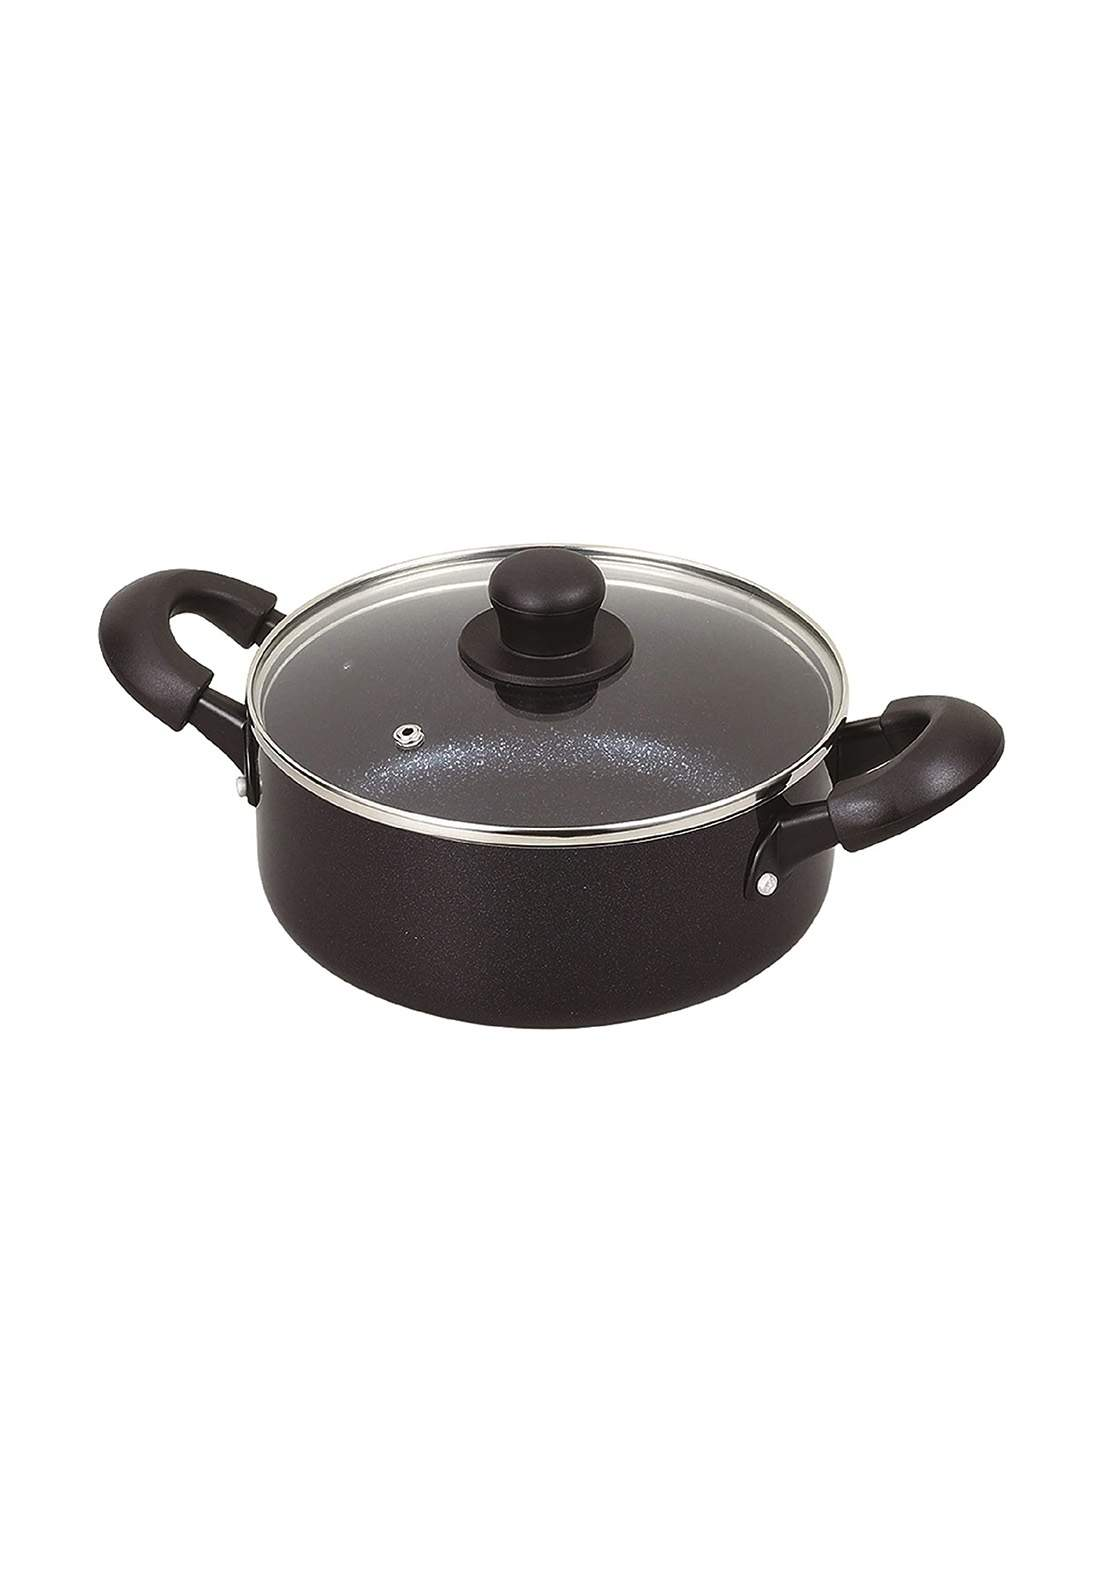 Pearl Metal HB-5118 Two-Handed Pot with Glass Lid   20 cm قدر